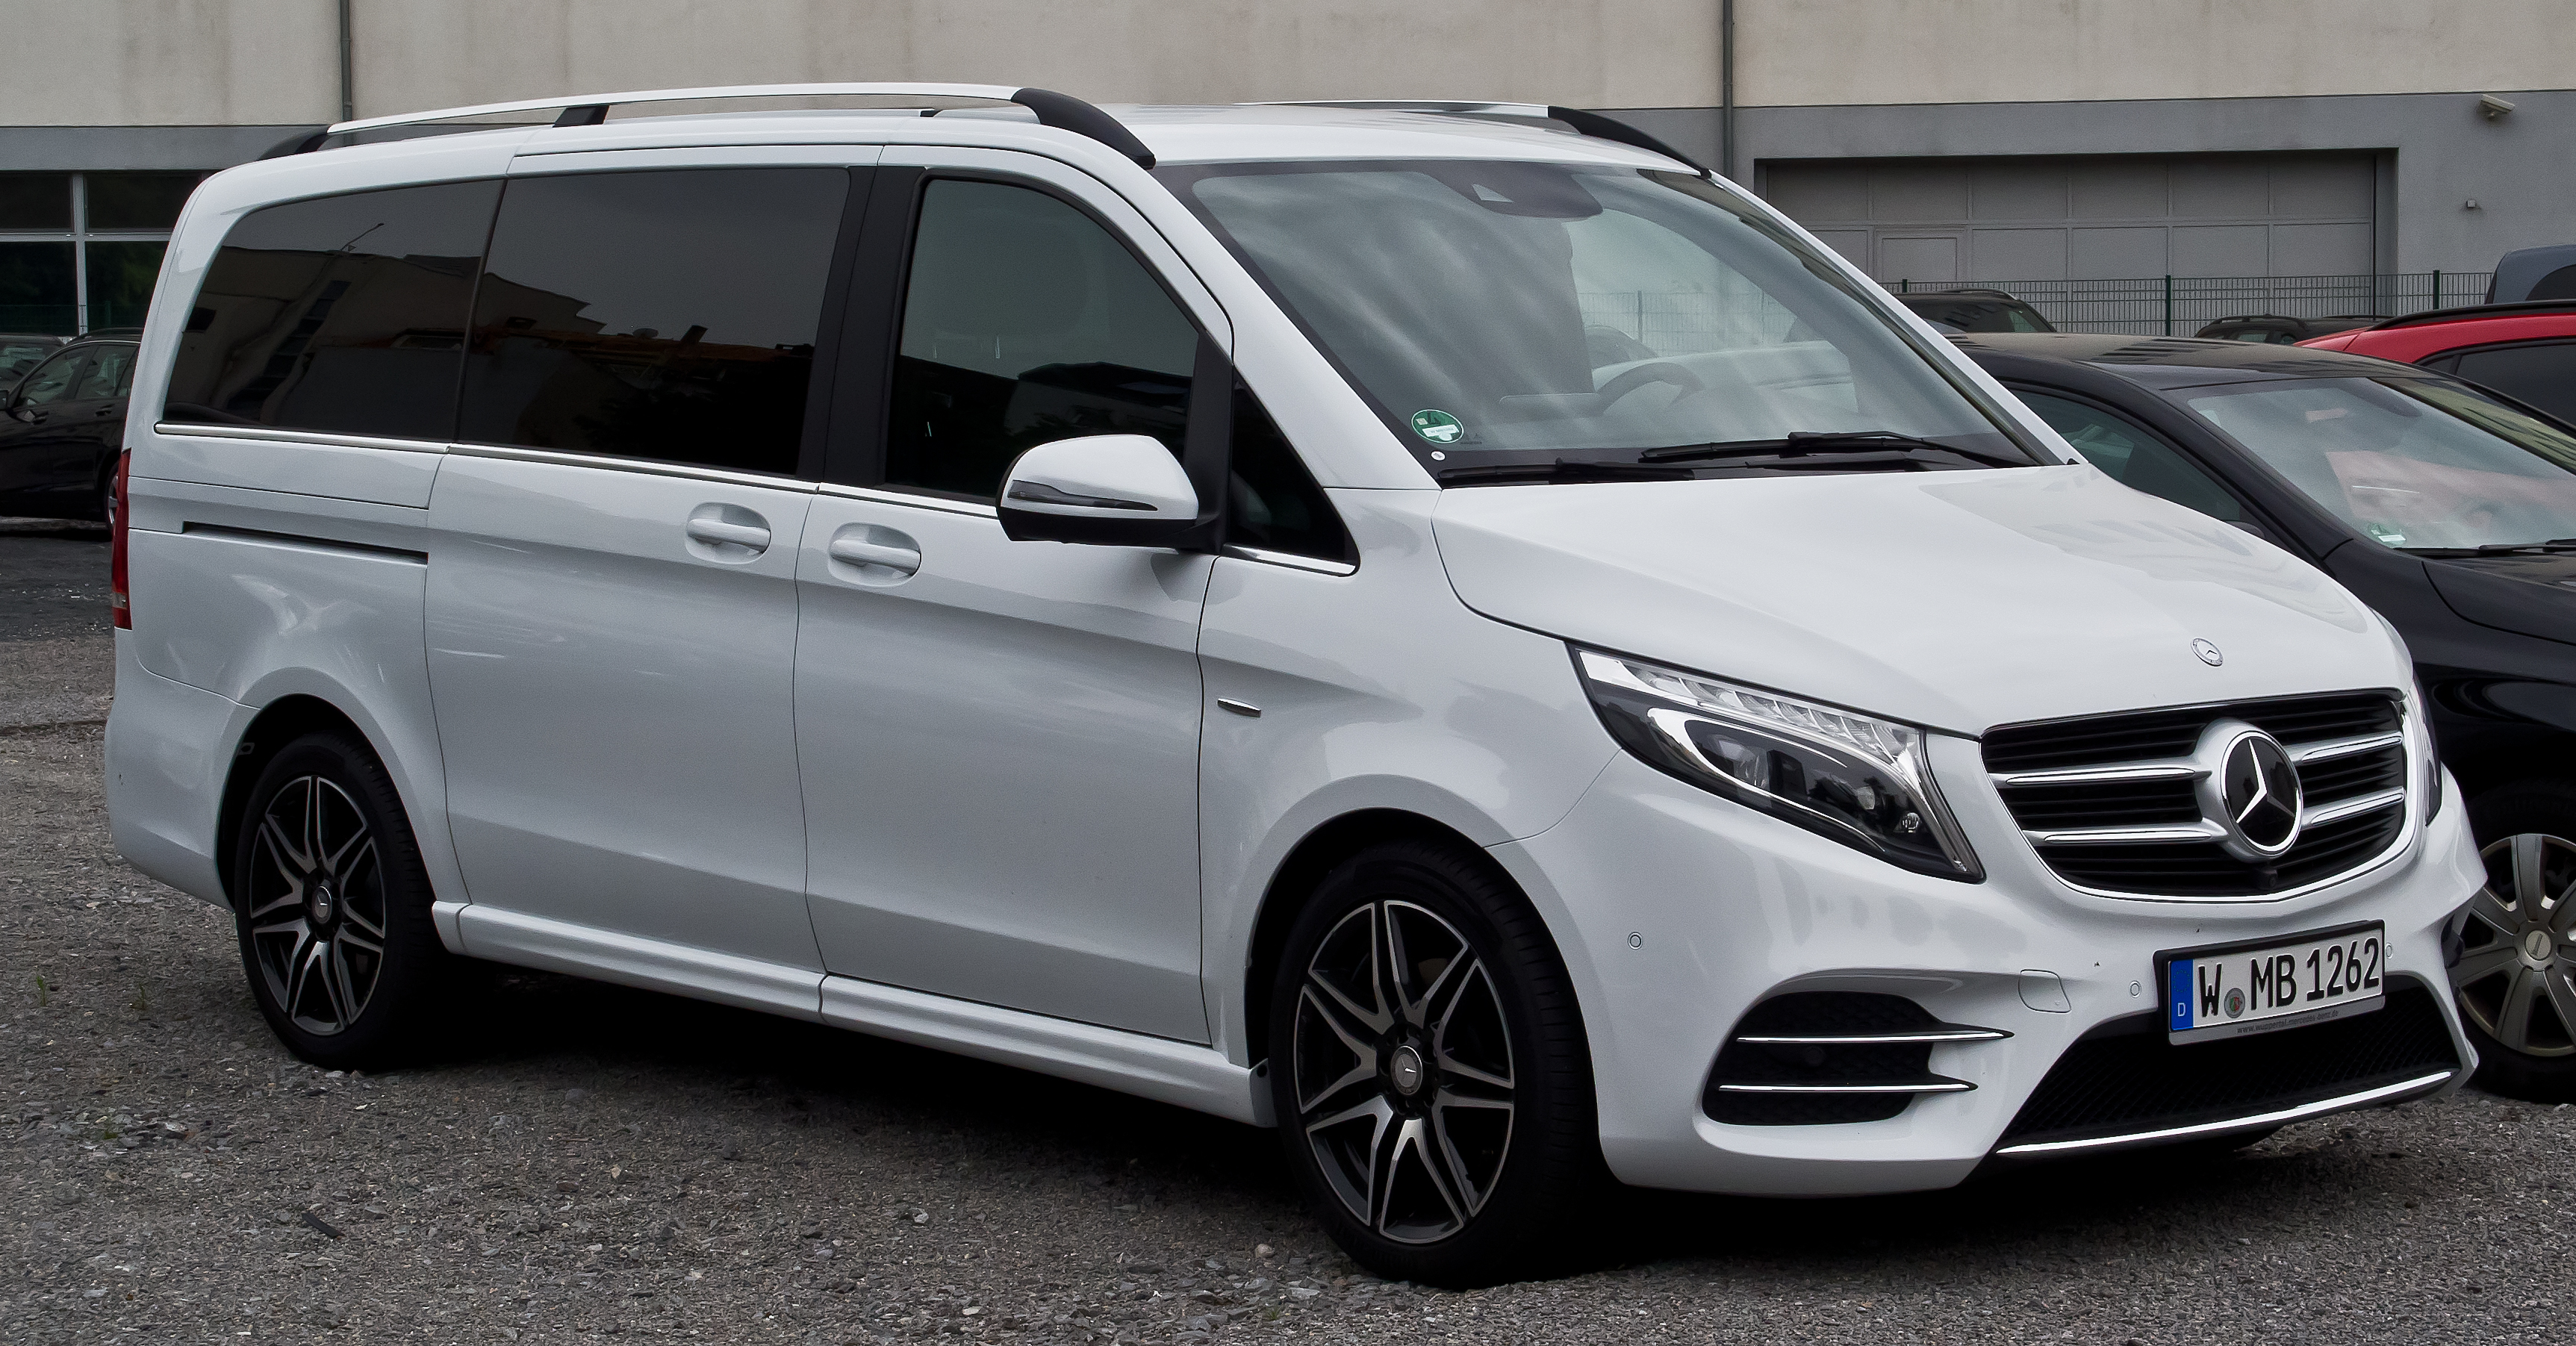 96b1086139 Mercedes-Benz Vito - Wikipedia